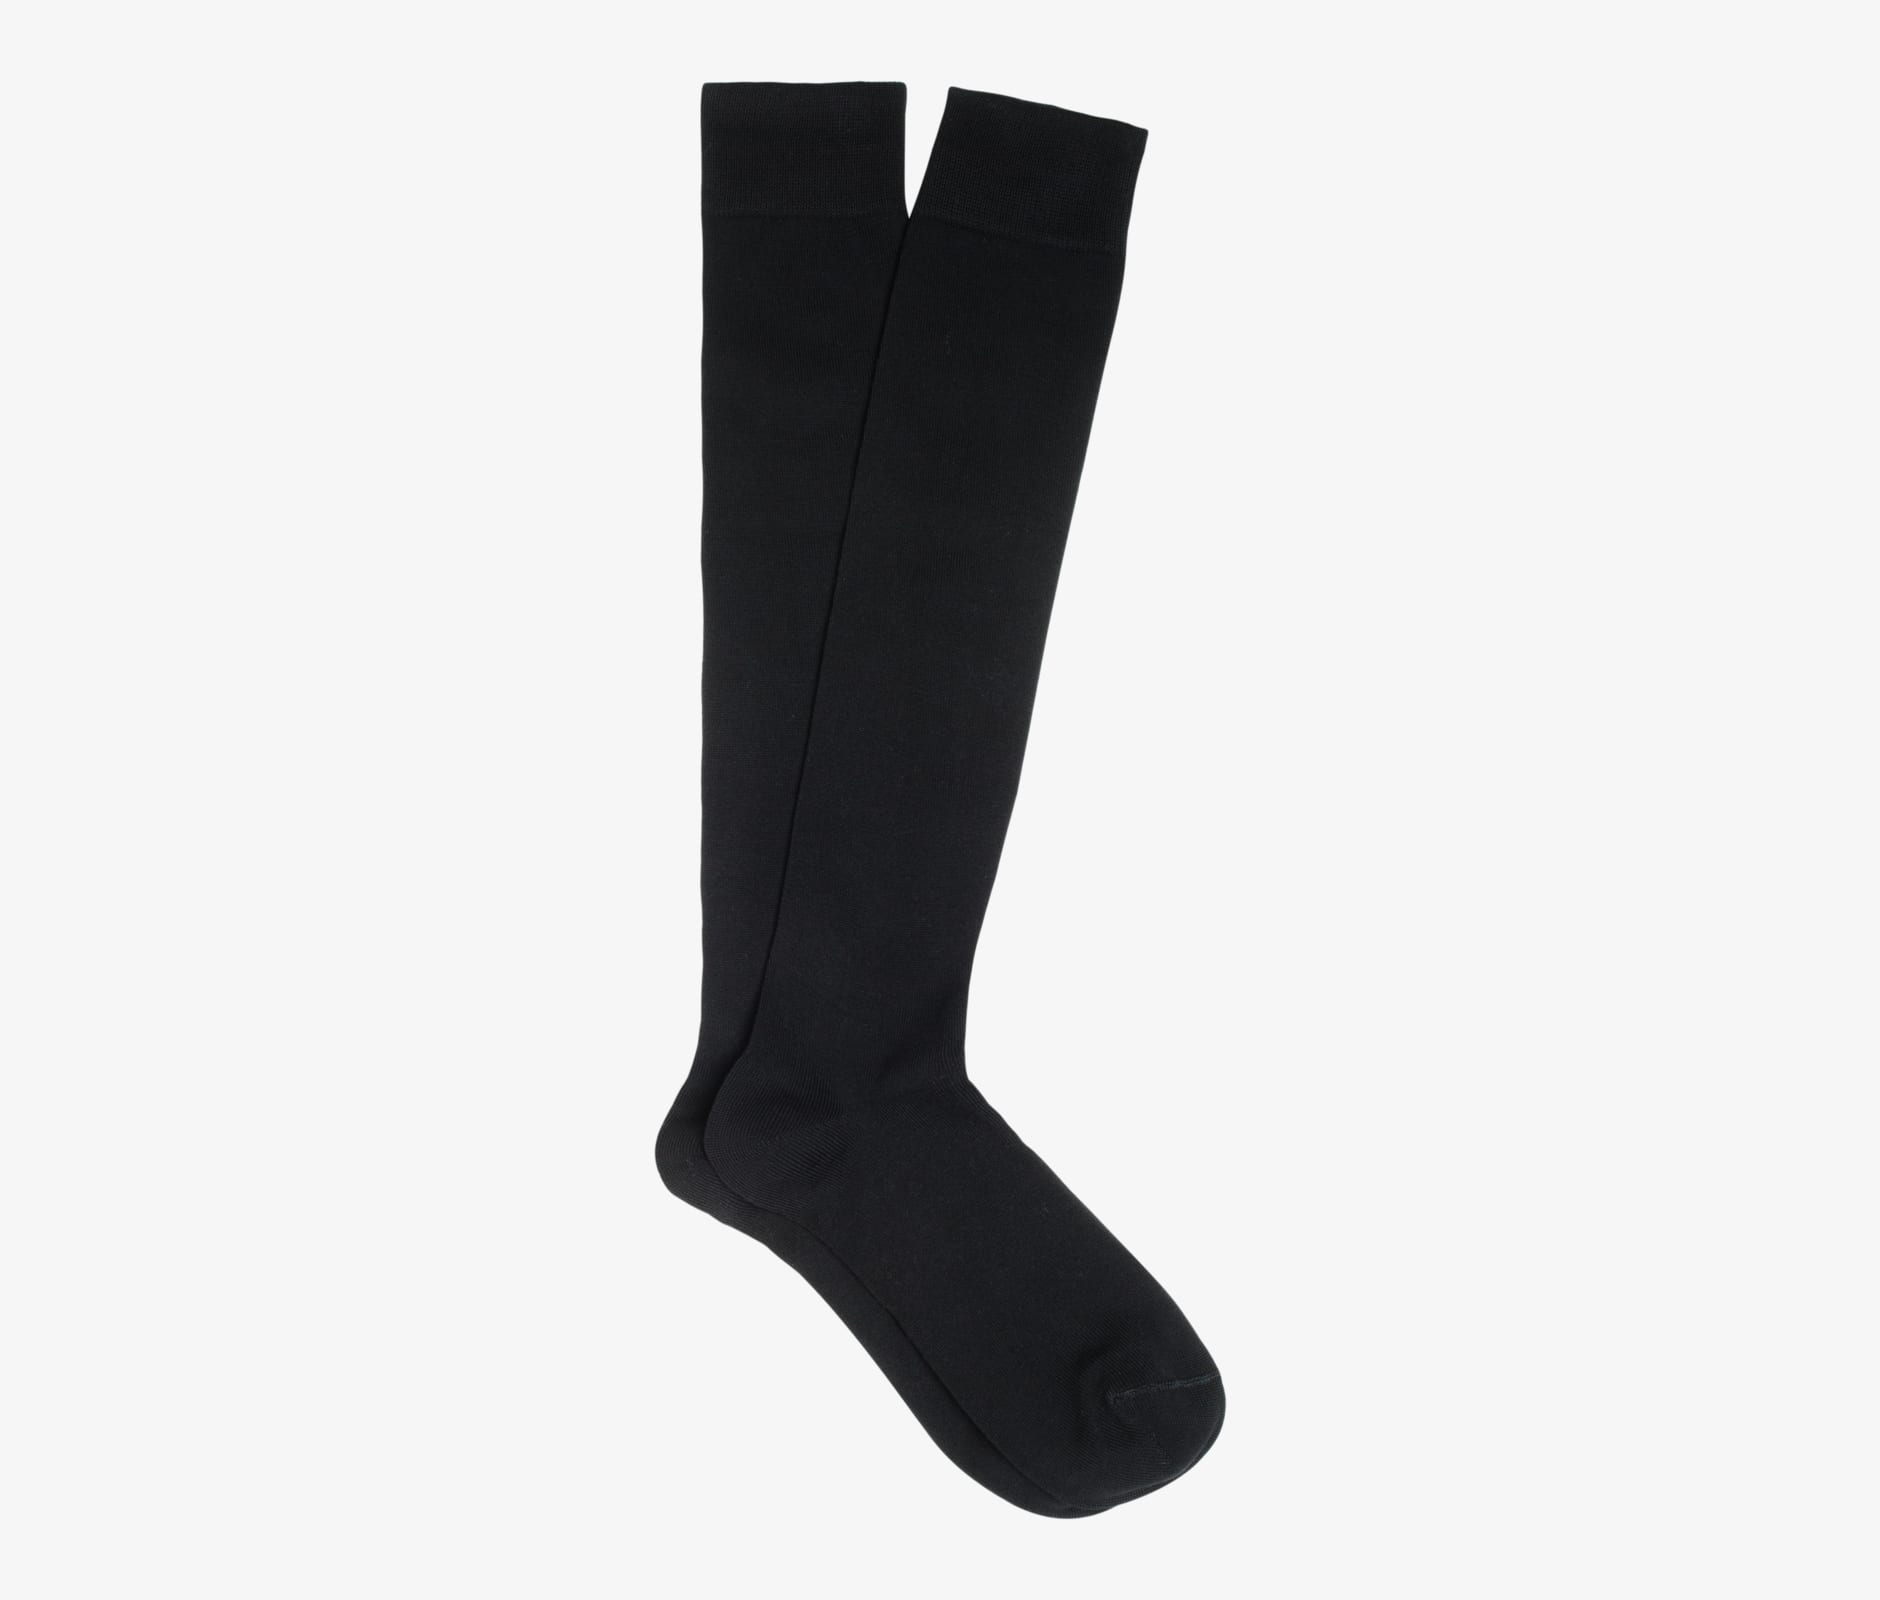 Black_Knee_high_Socks_O606